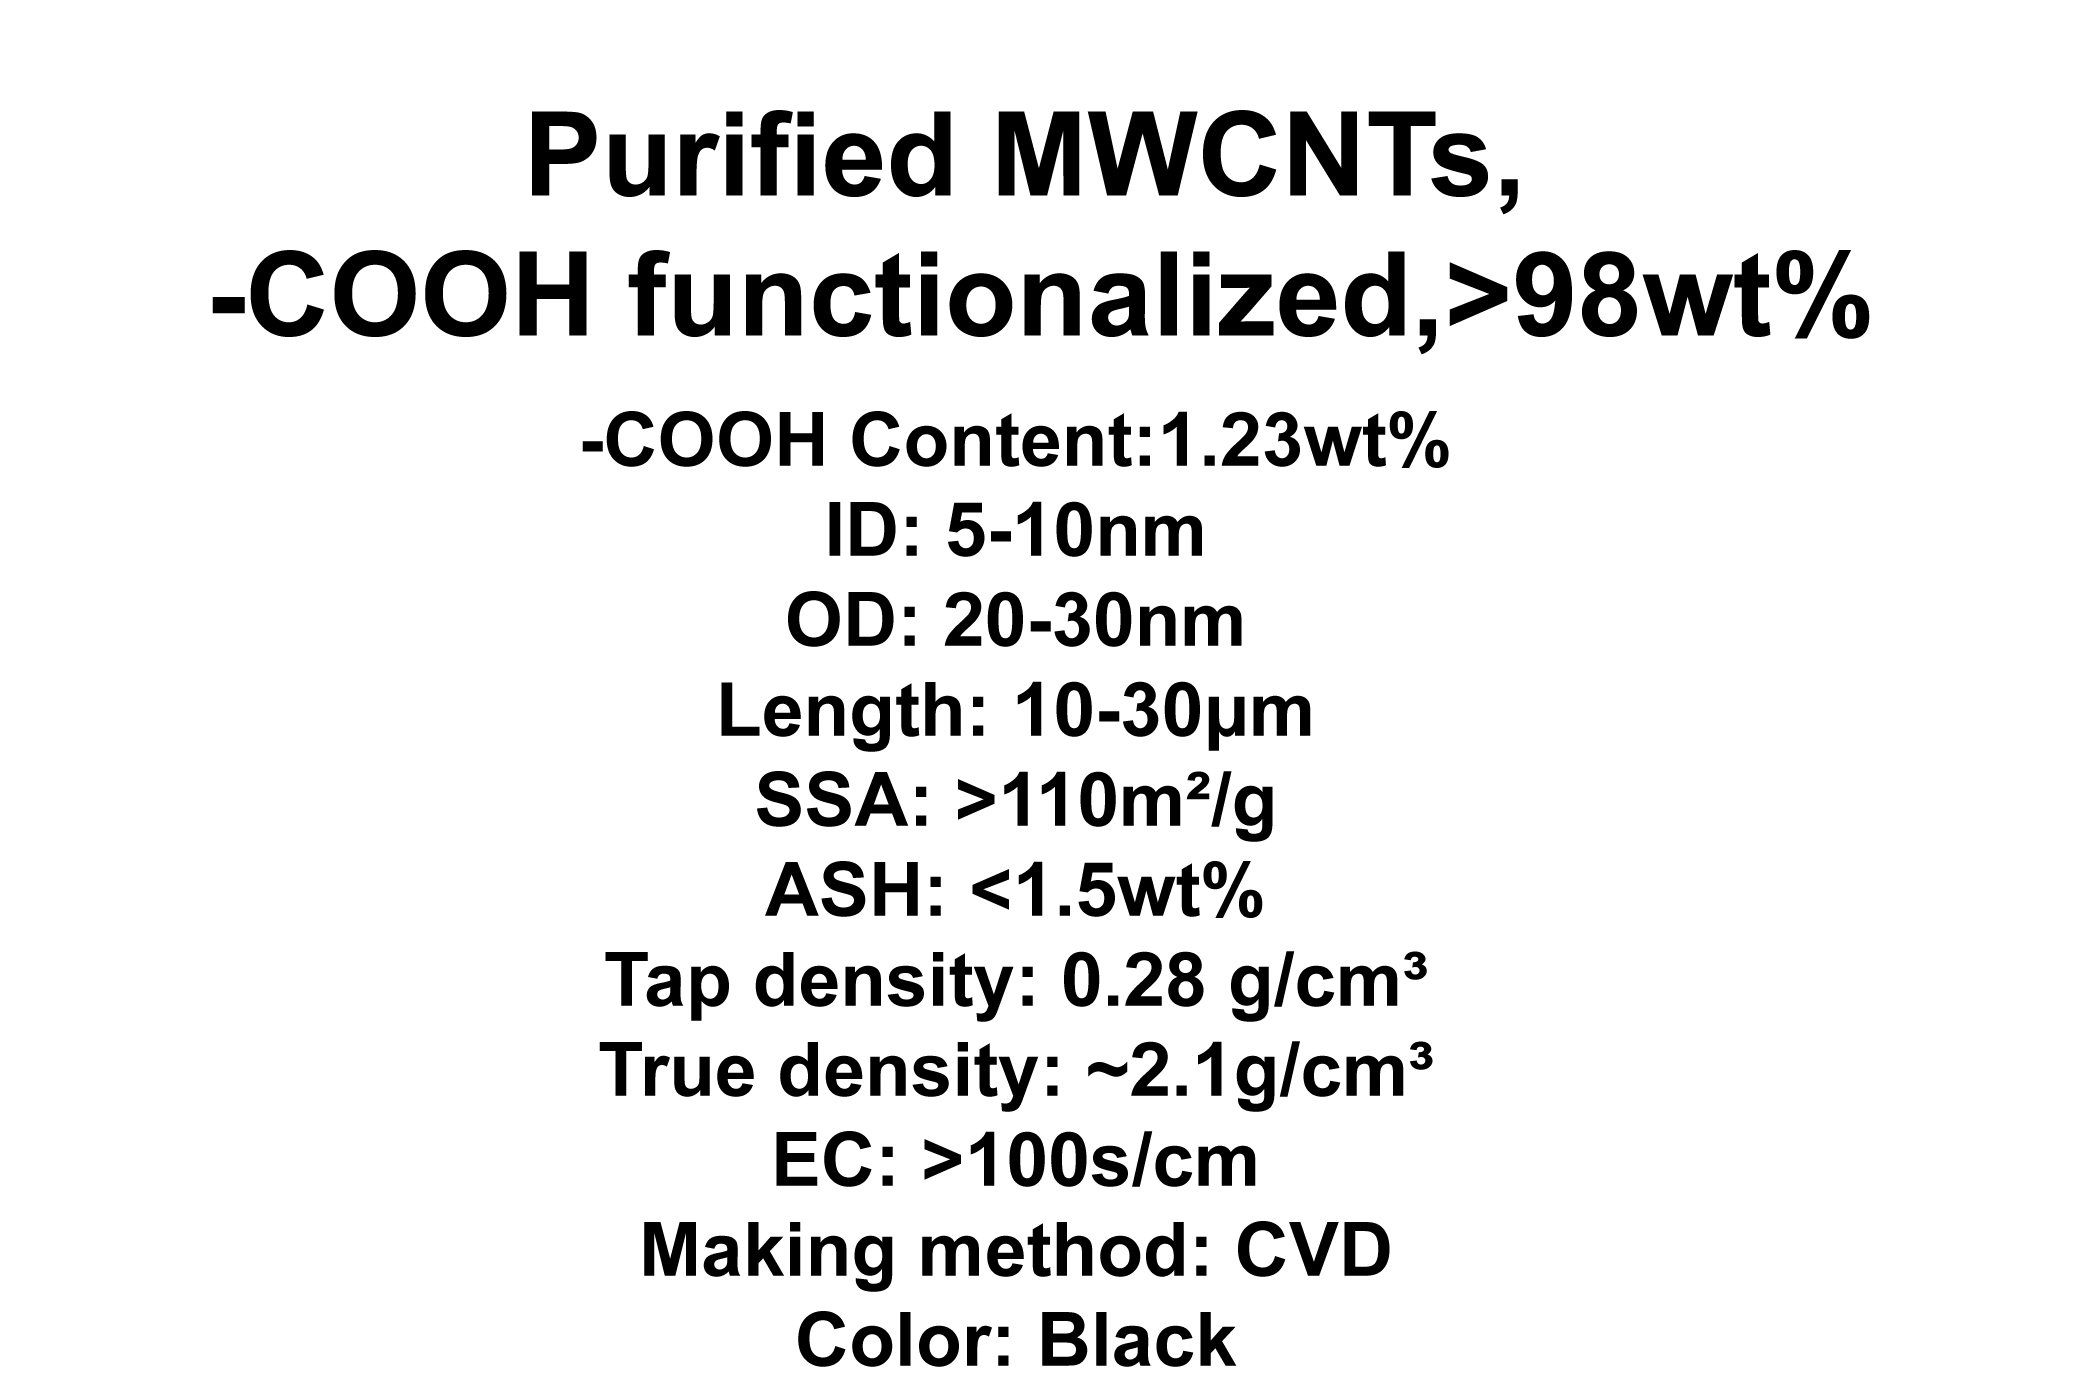 Purified MWCNTs, -COOH functionalized (TNMC5)